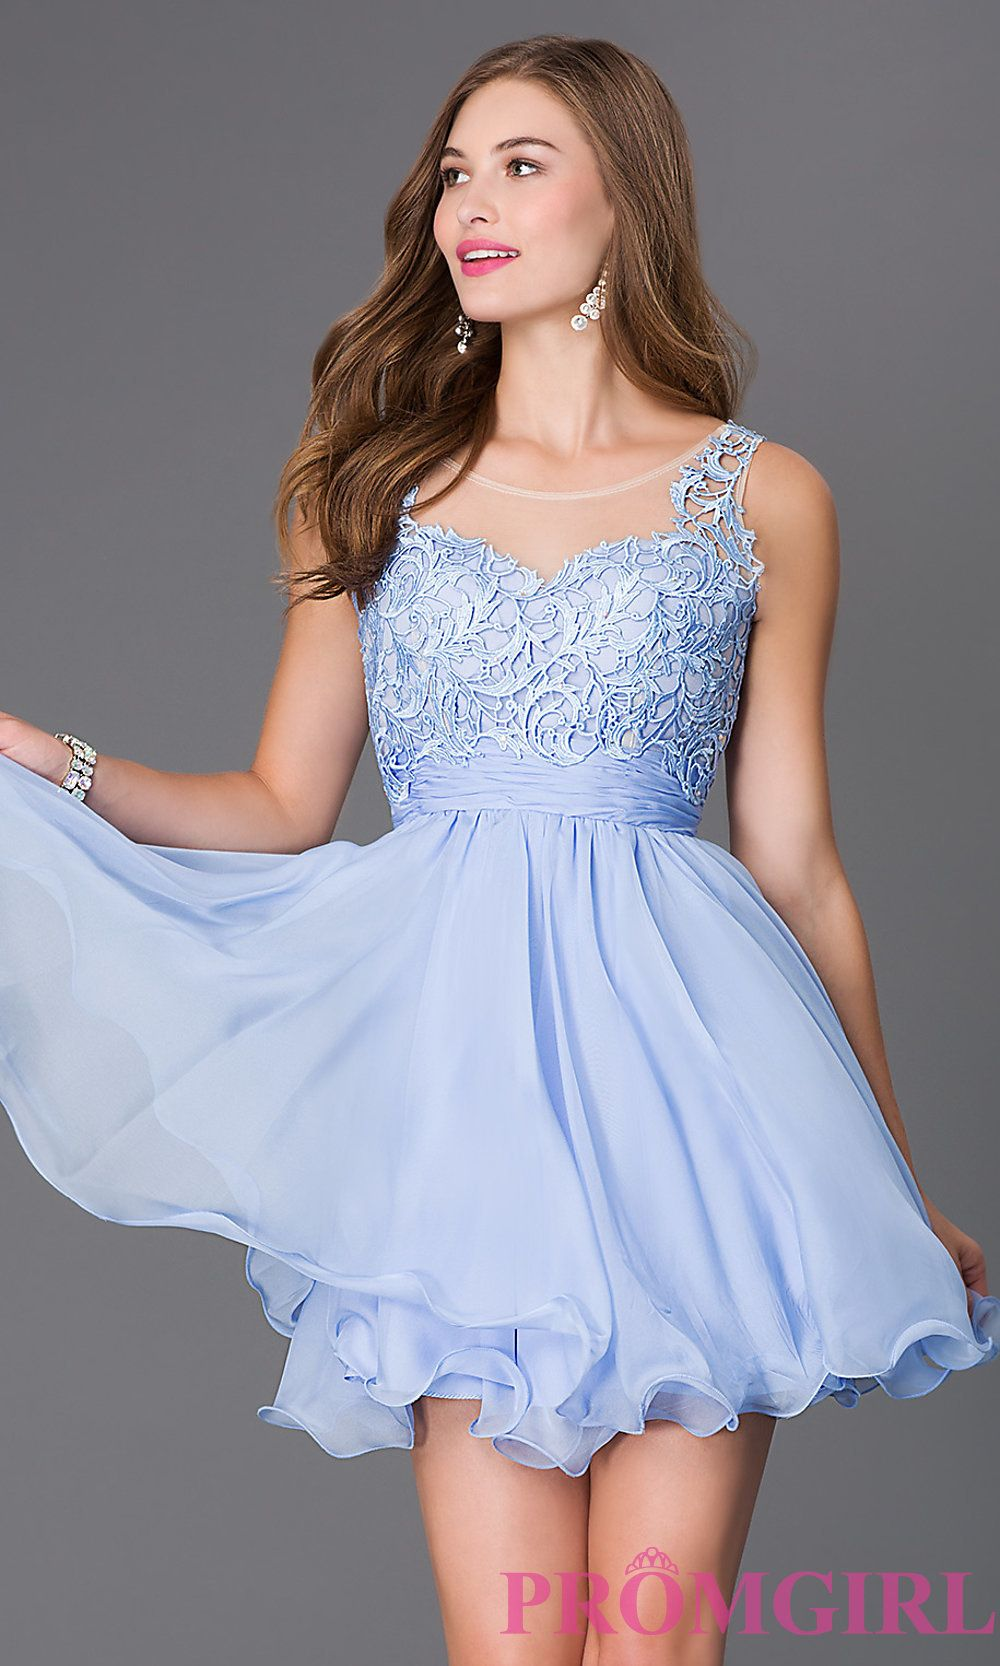 Short sleeveless party dress with lace bodice lace bodice bodice